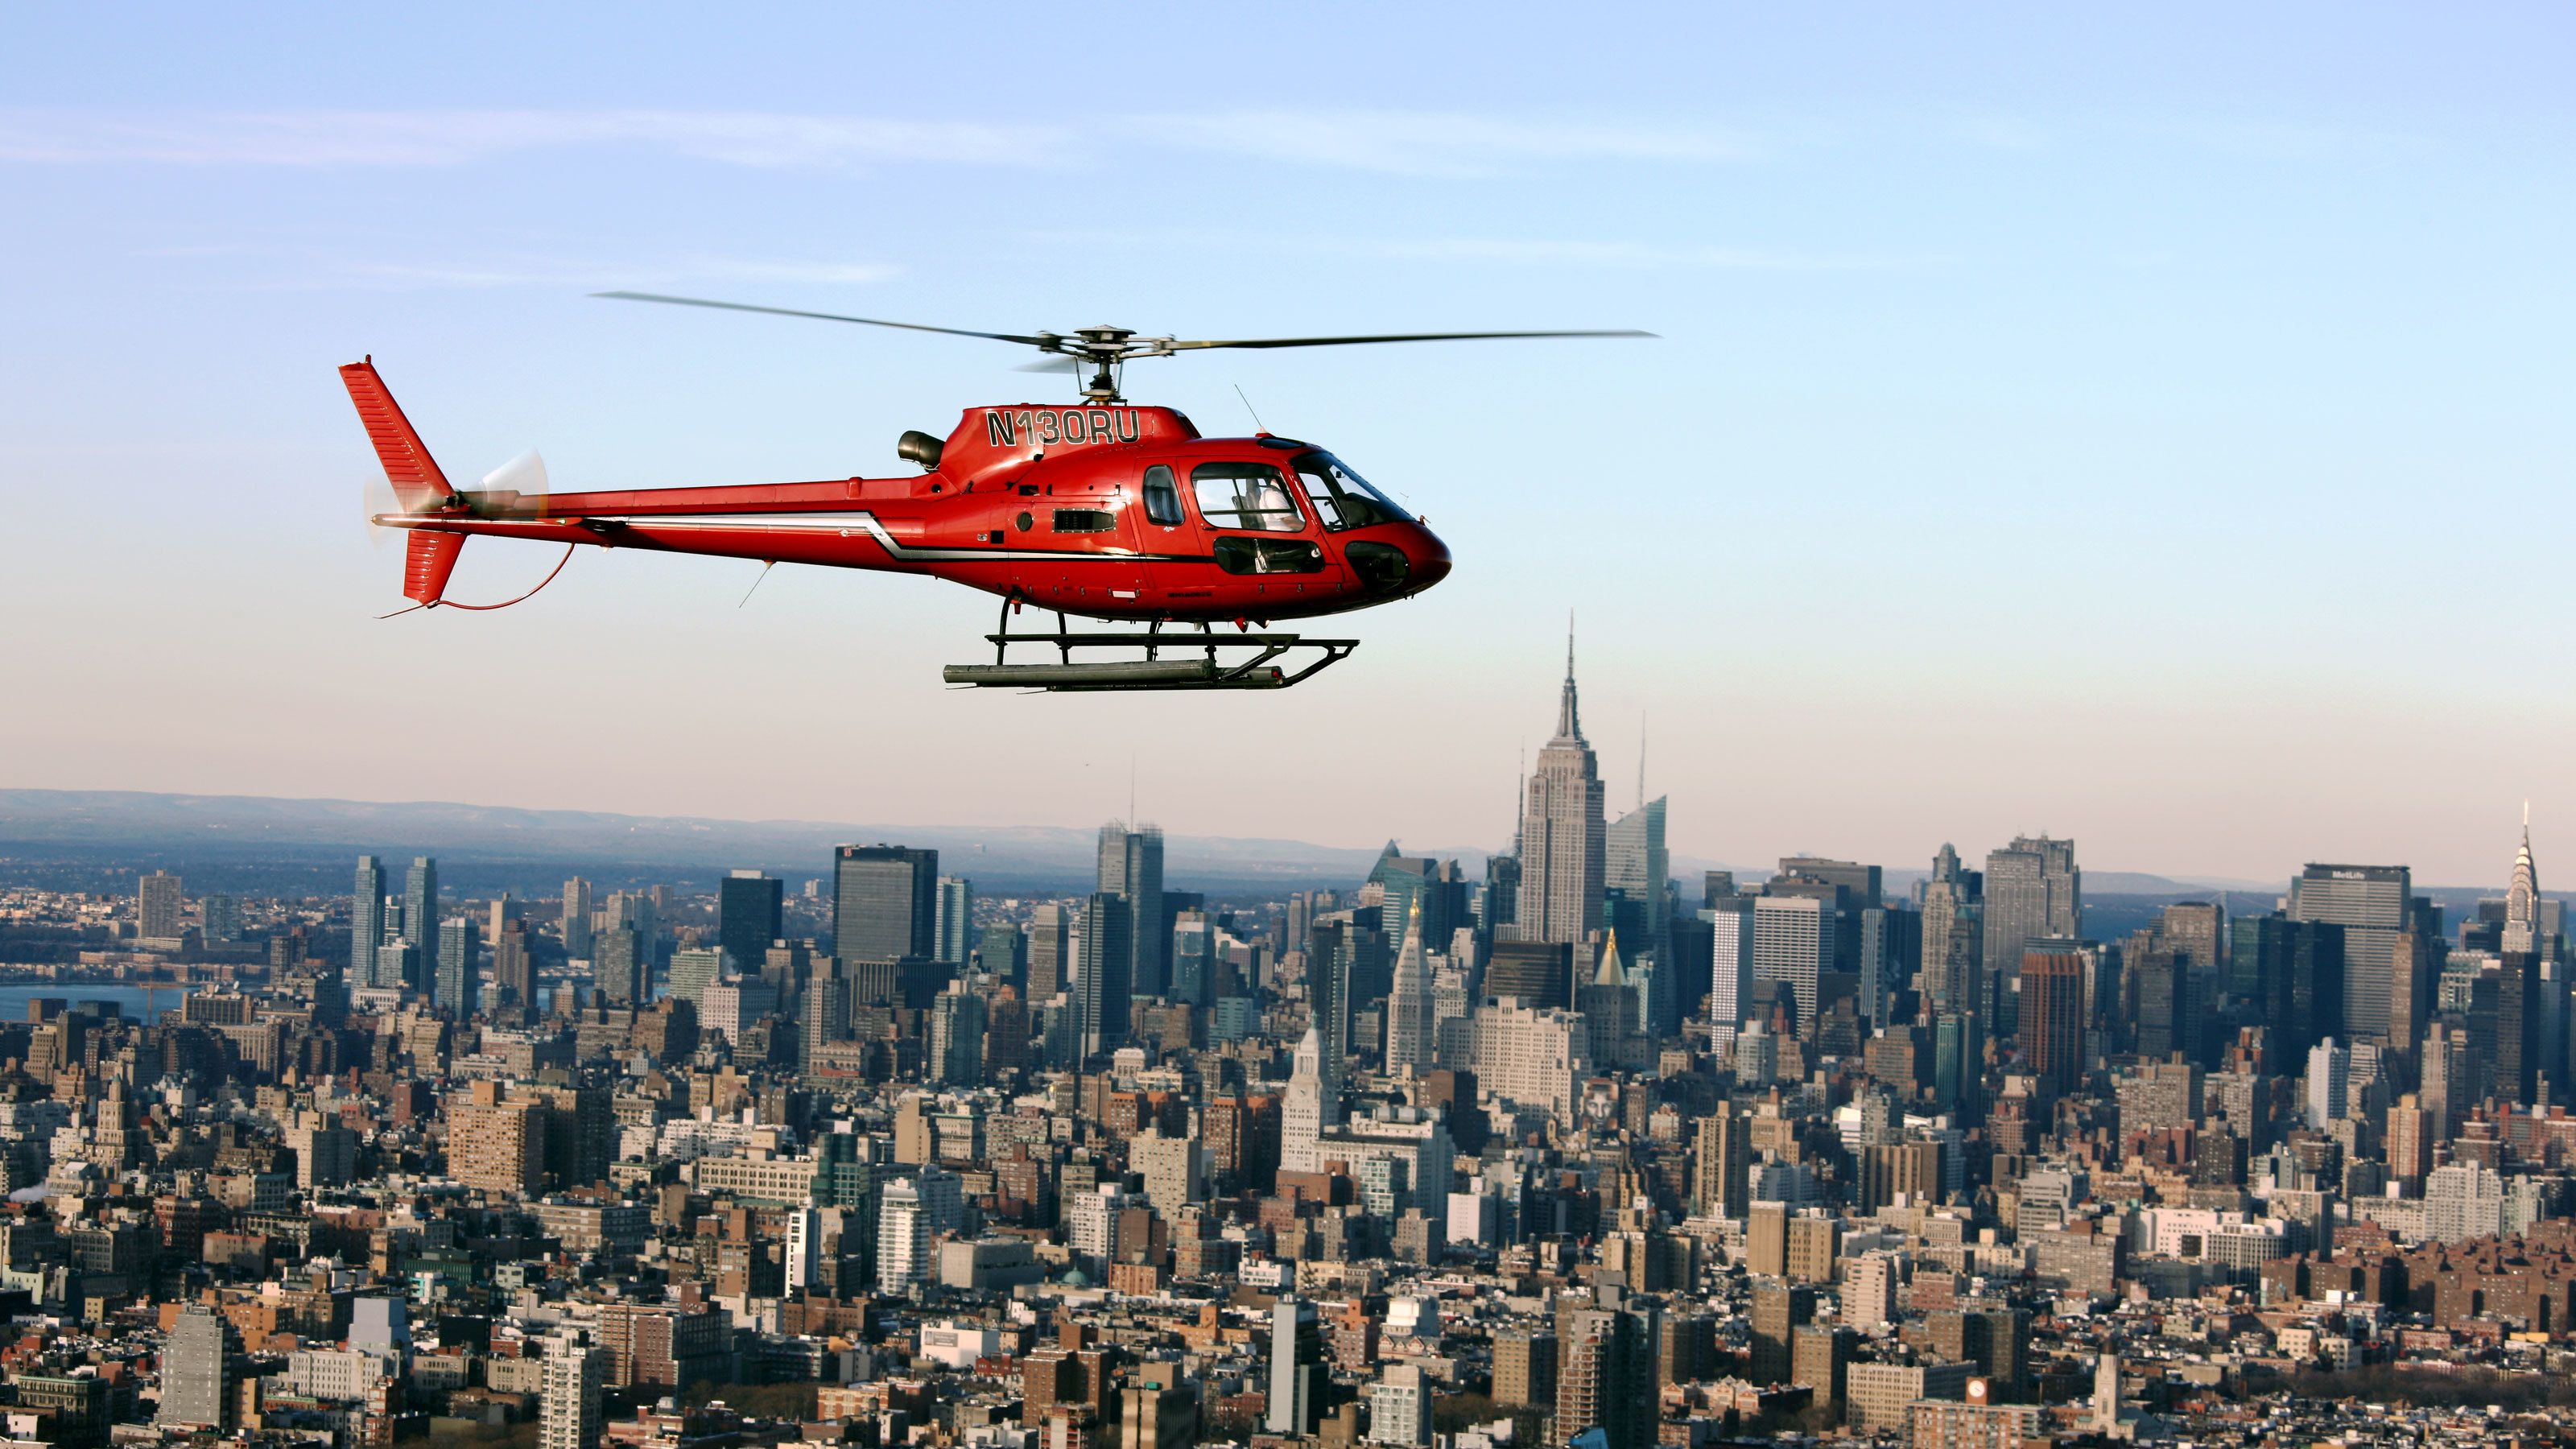 Helicopter over Manhattan in New York